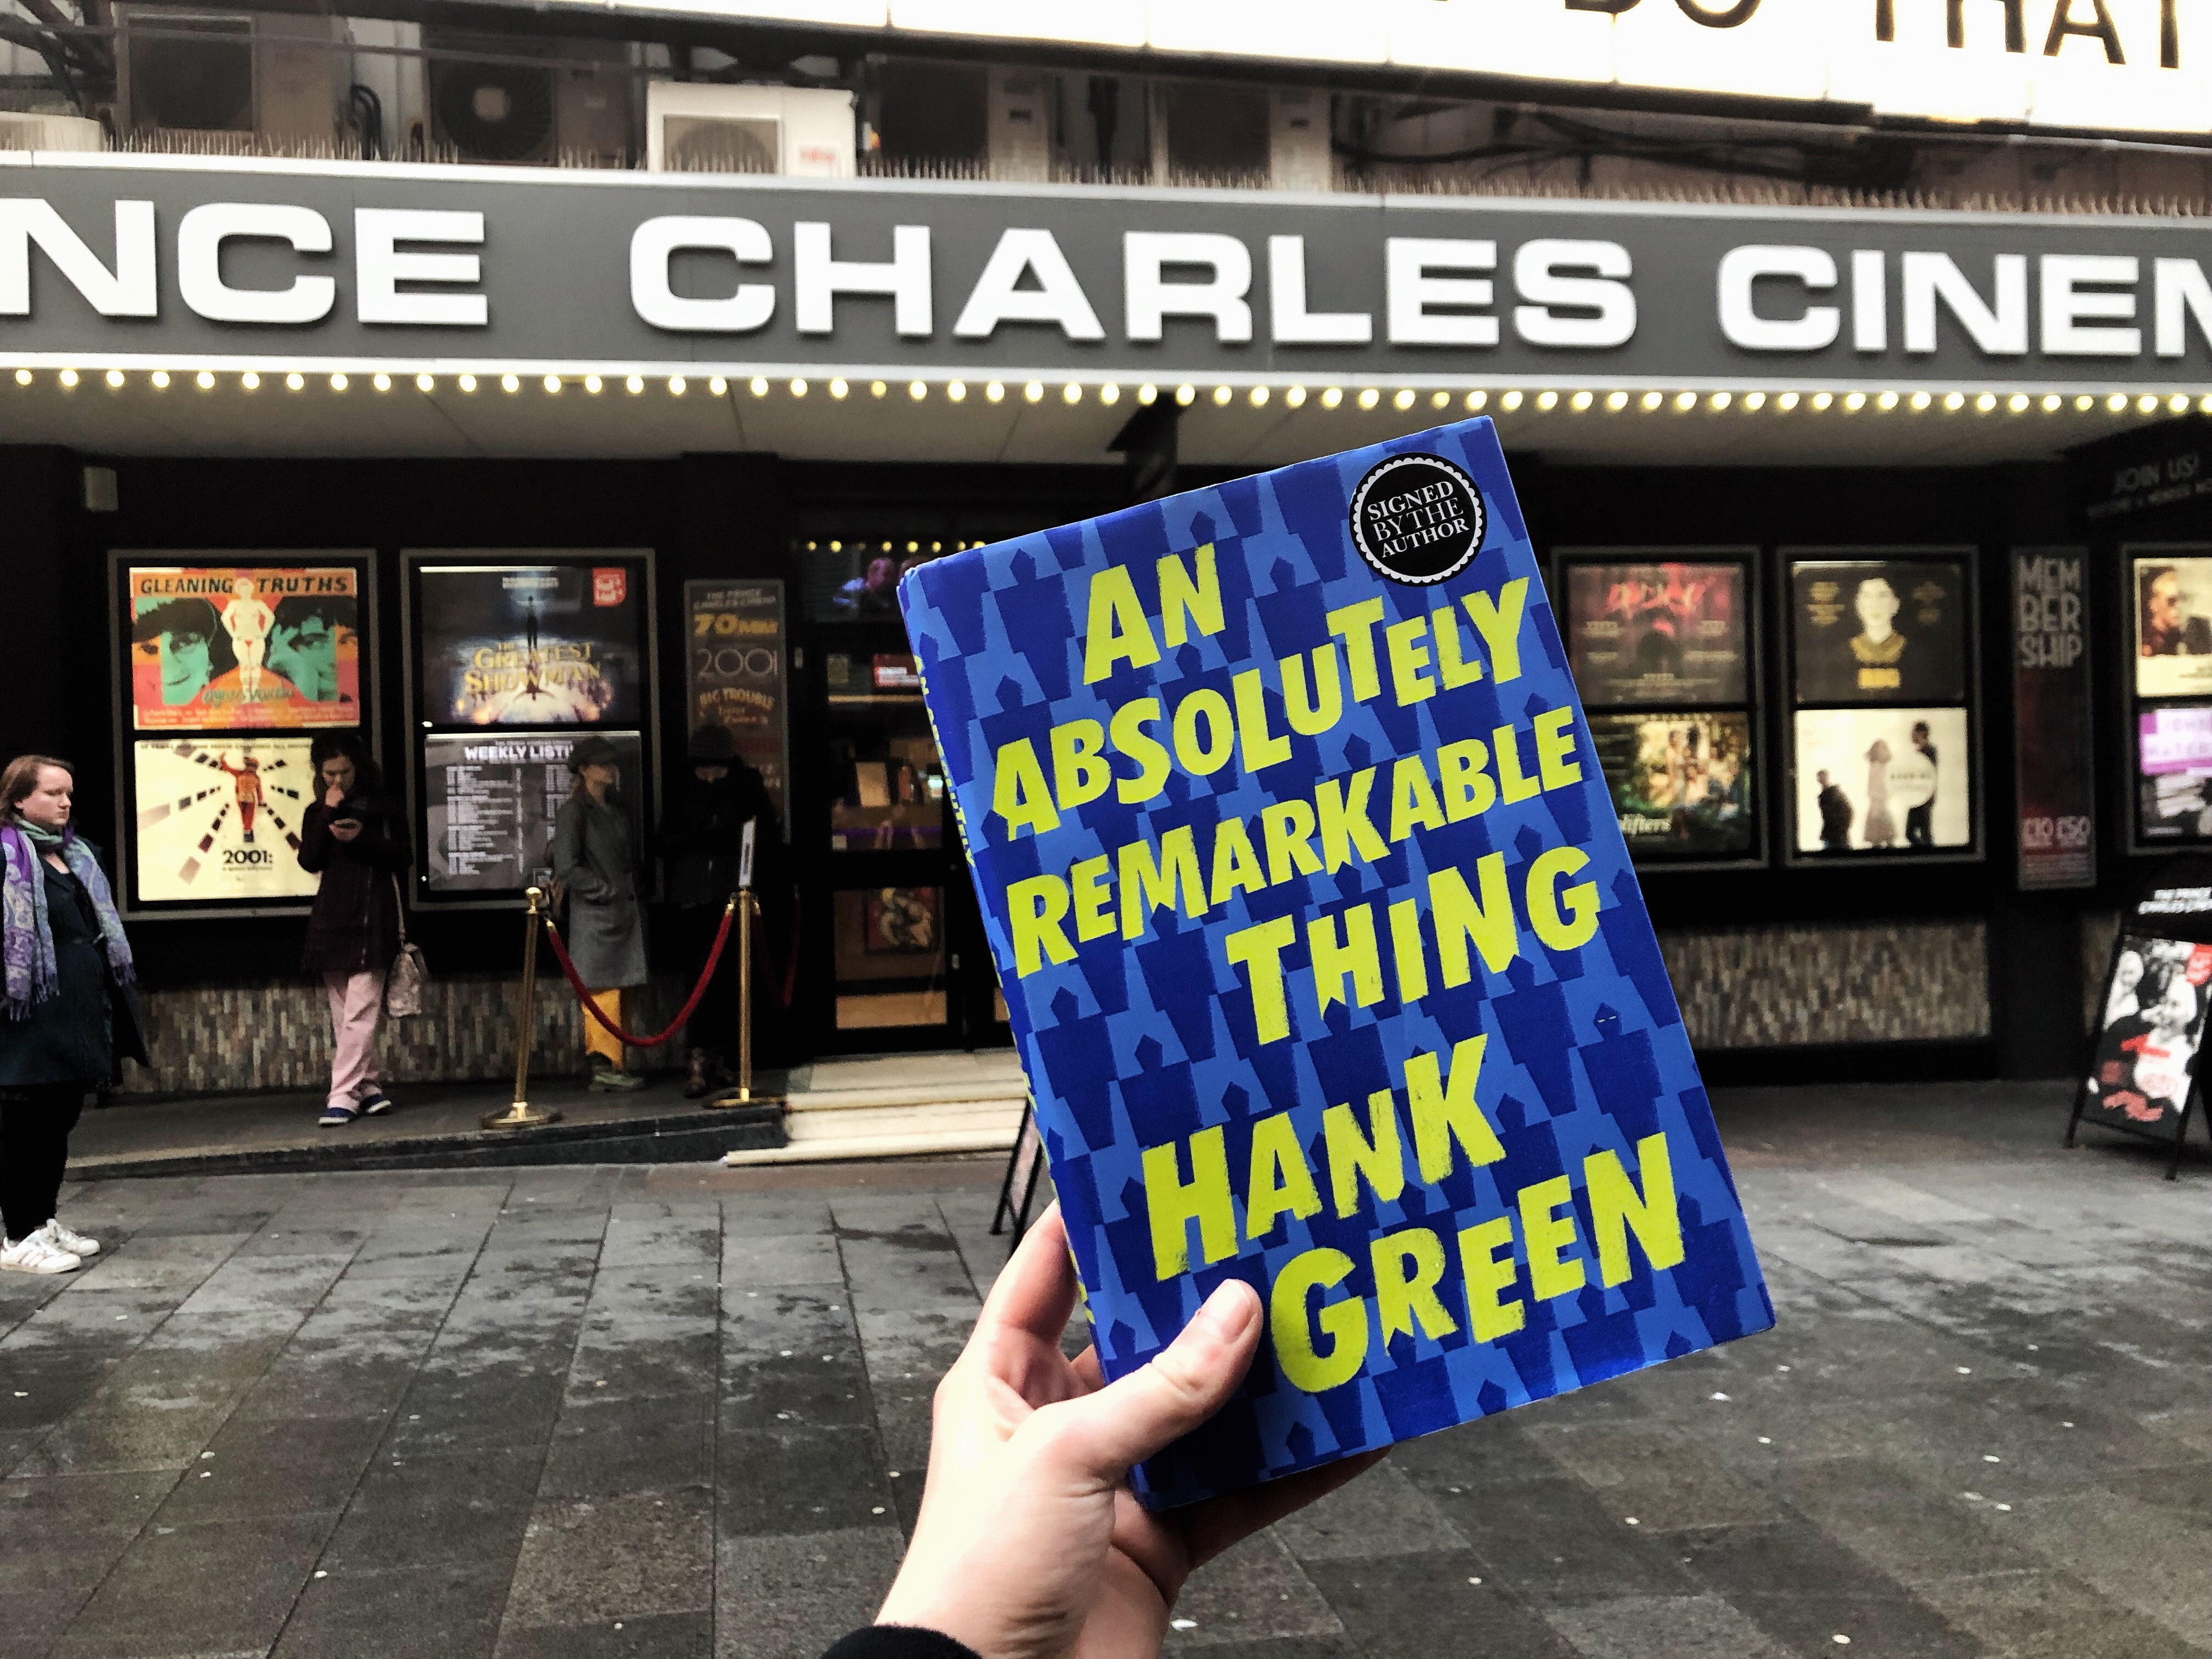 An Absolutely Remarkable Thing held up in front of The Prince Charles Cinema, where the event was held.